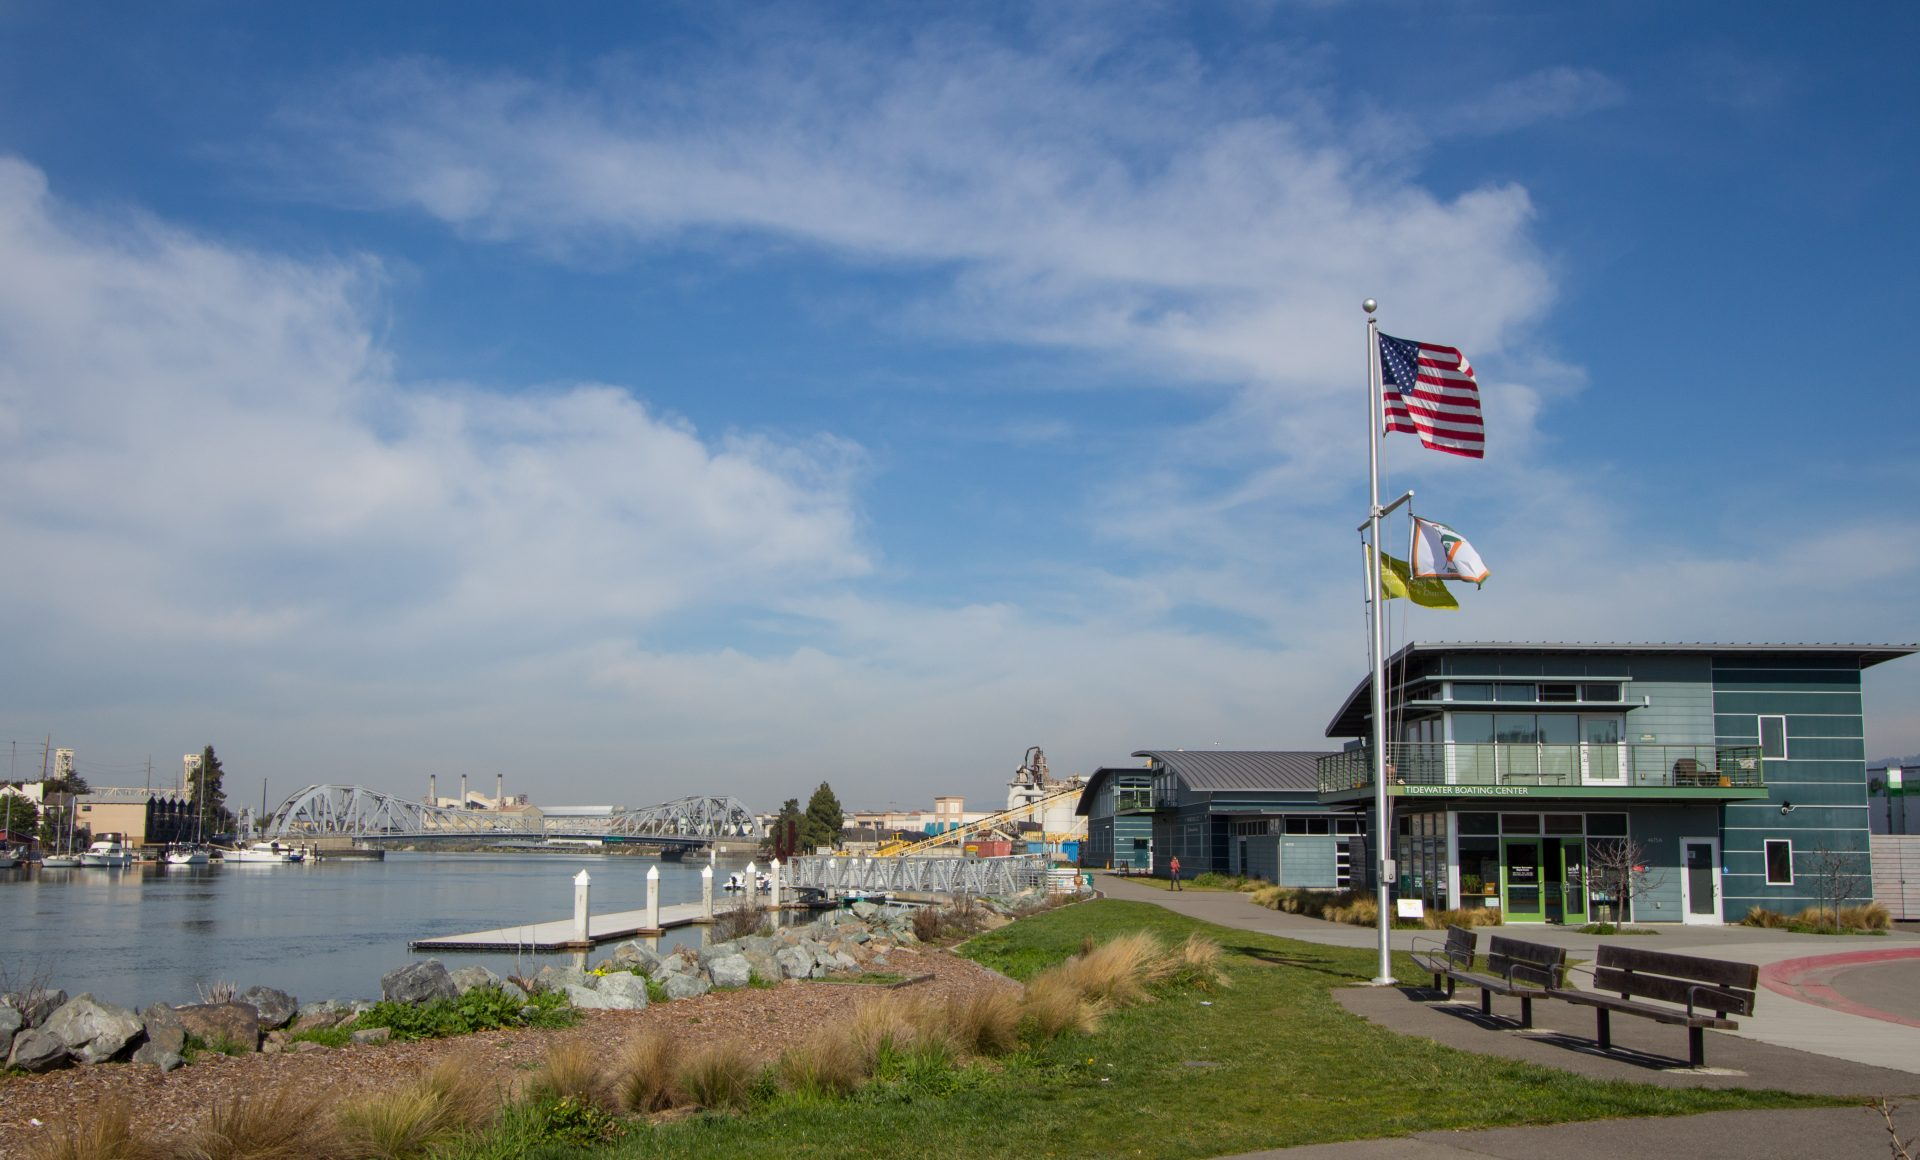 bay on right, green lawn center, flag pole with flags waving in wind. Two-story building in background